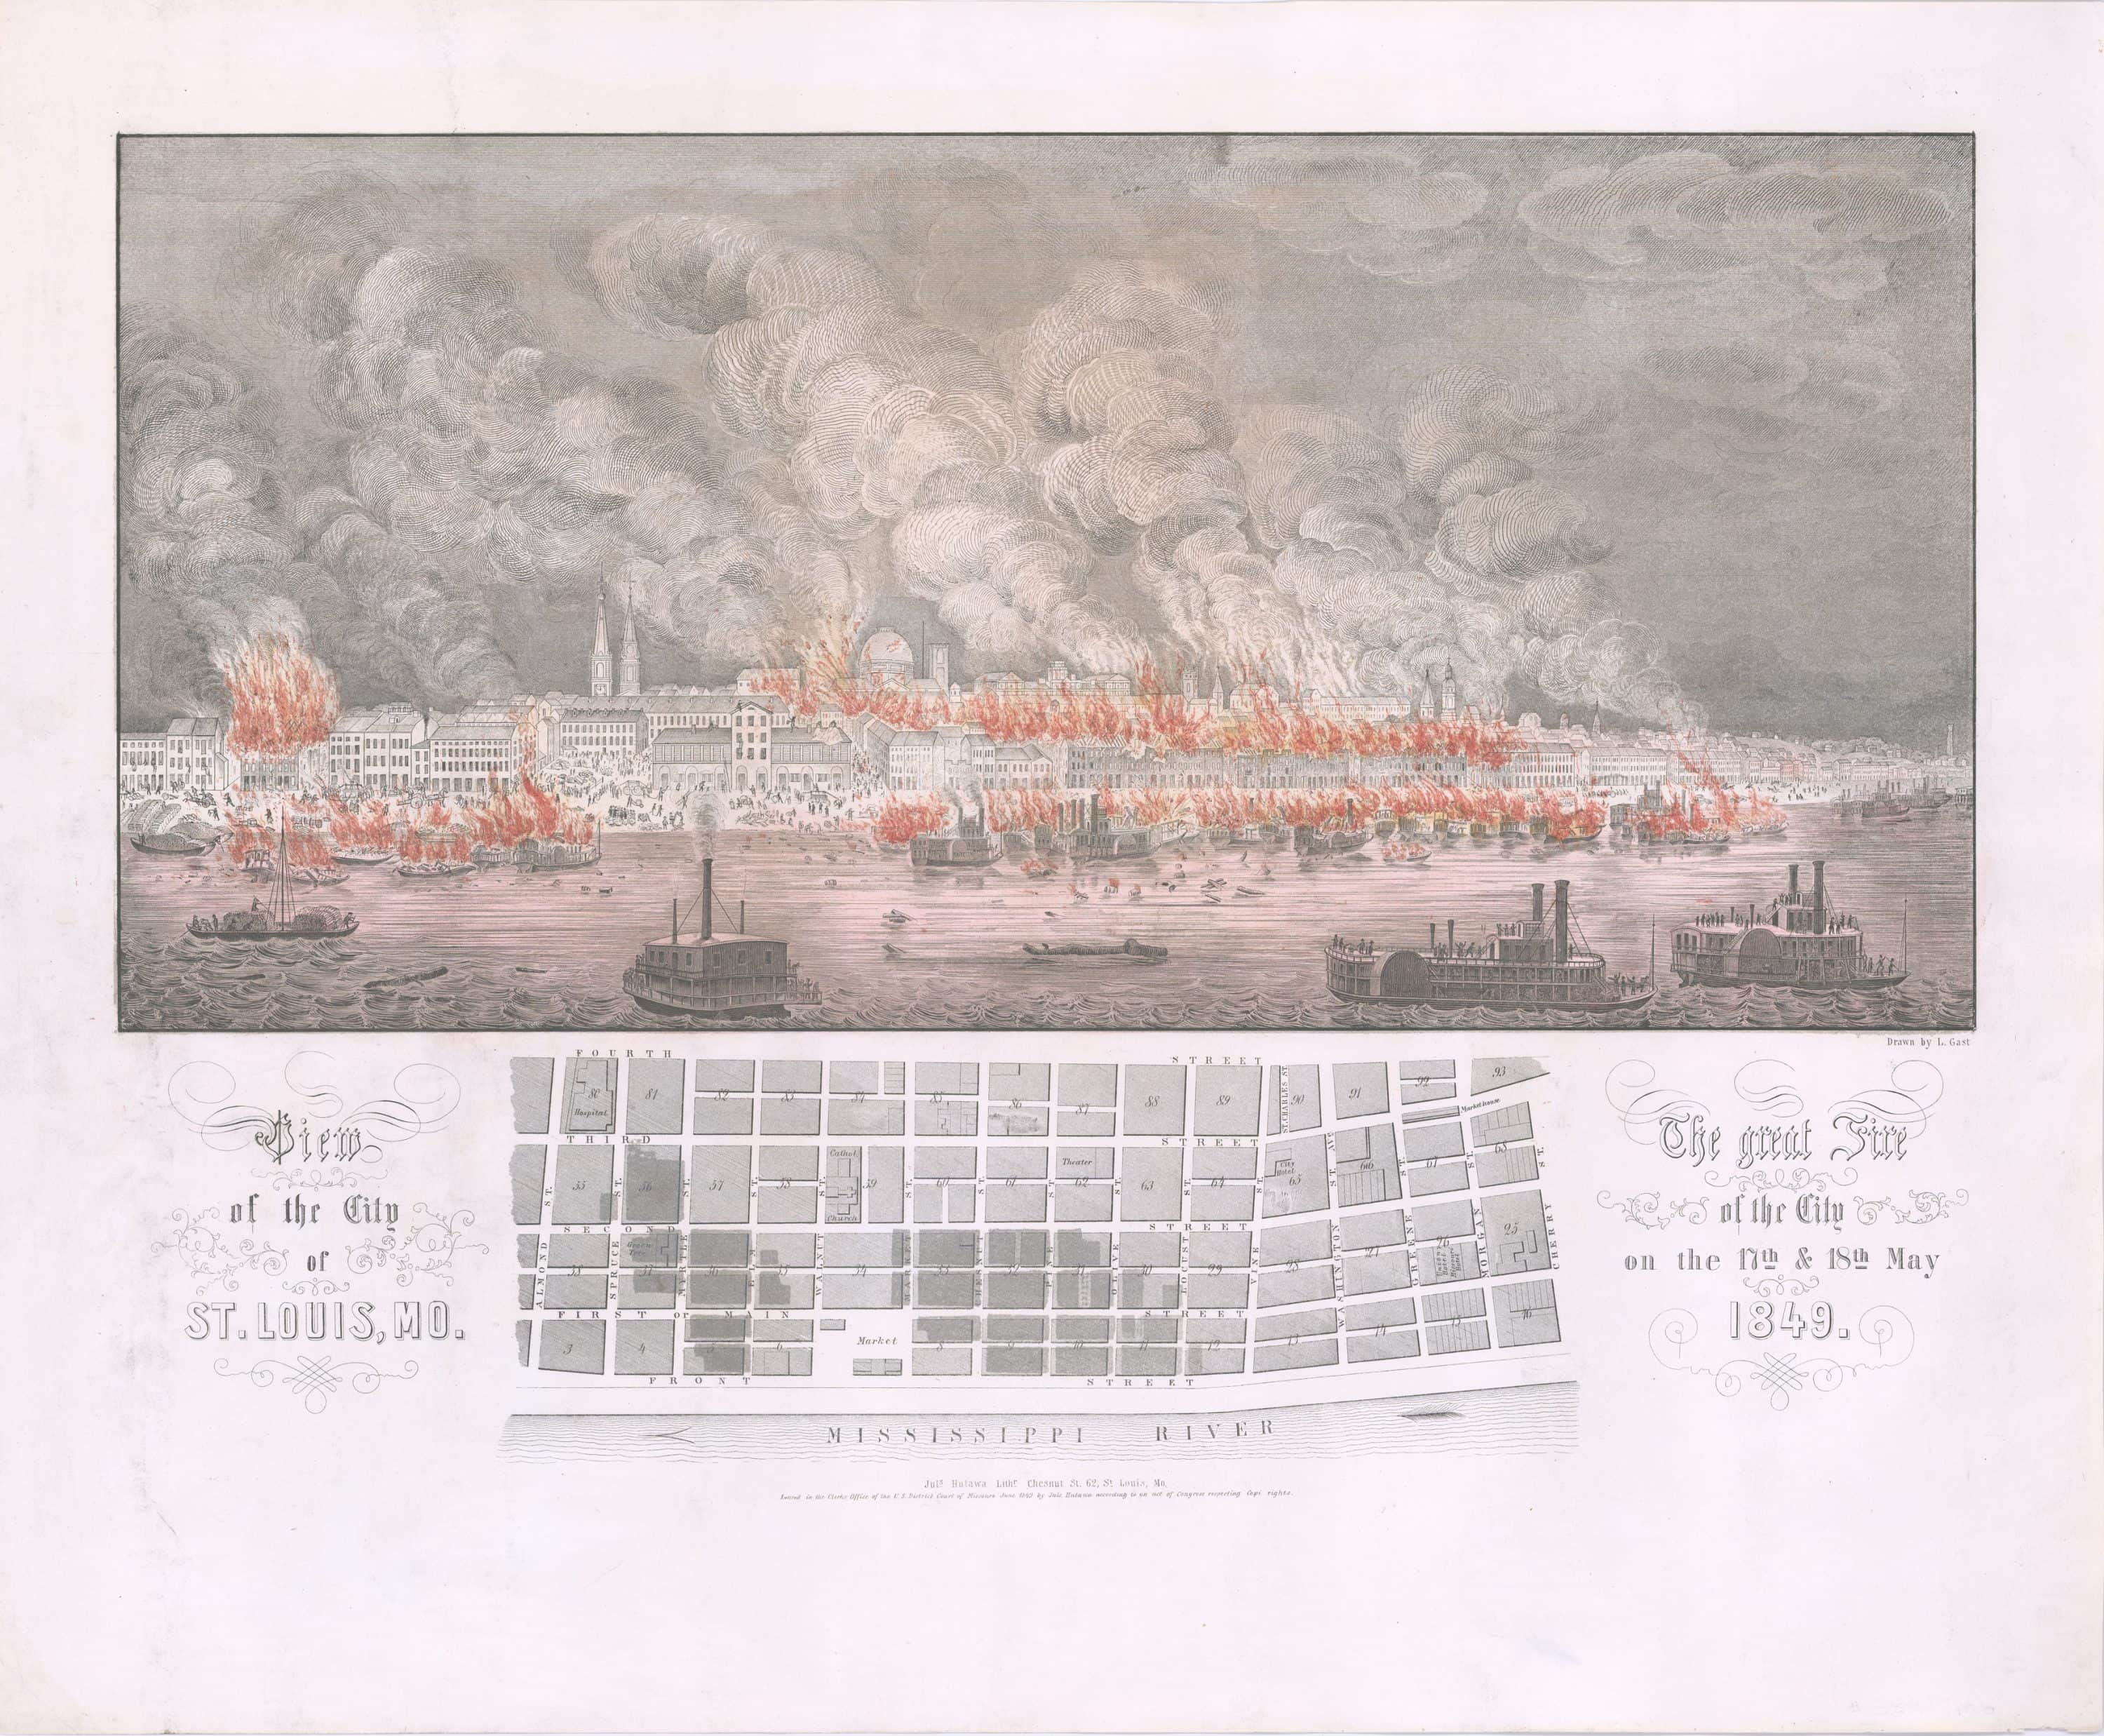 Dramatic map and view of the 1849 St. Louis Fire - Rare ...